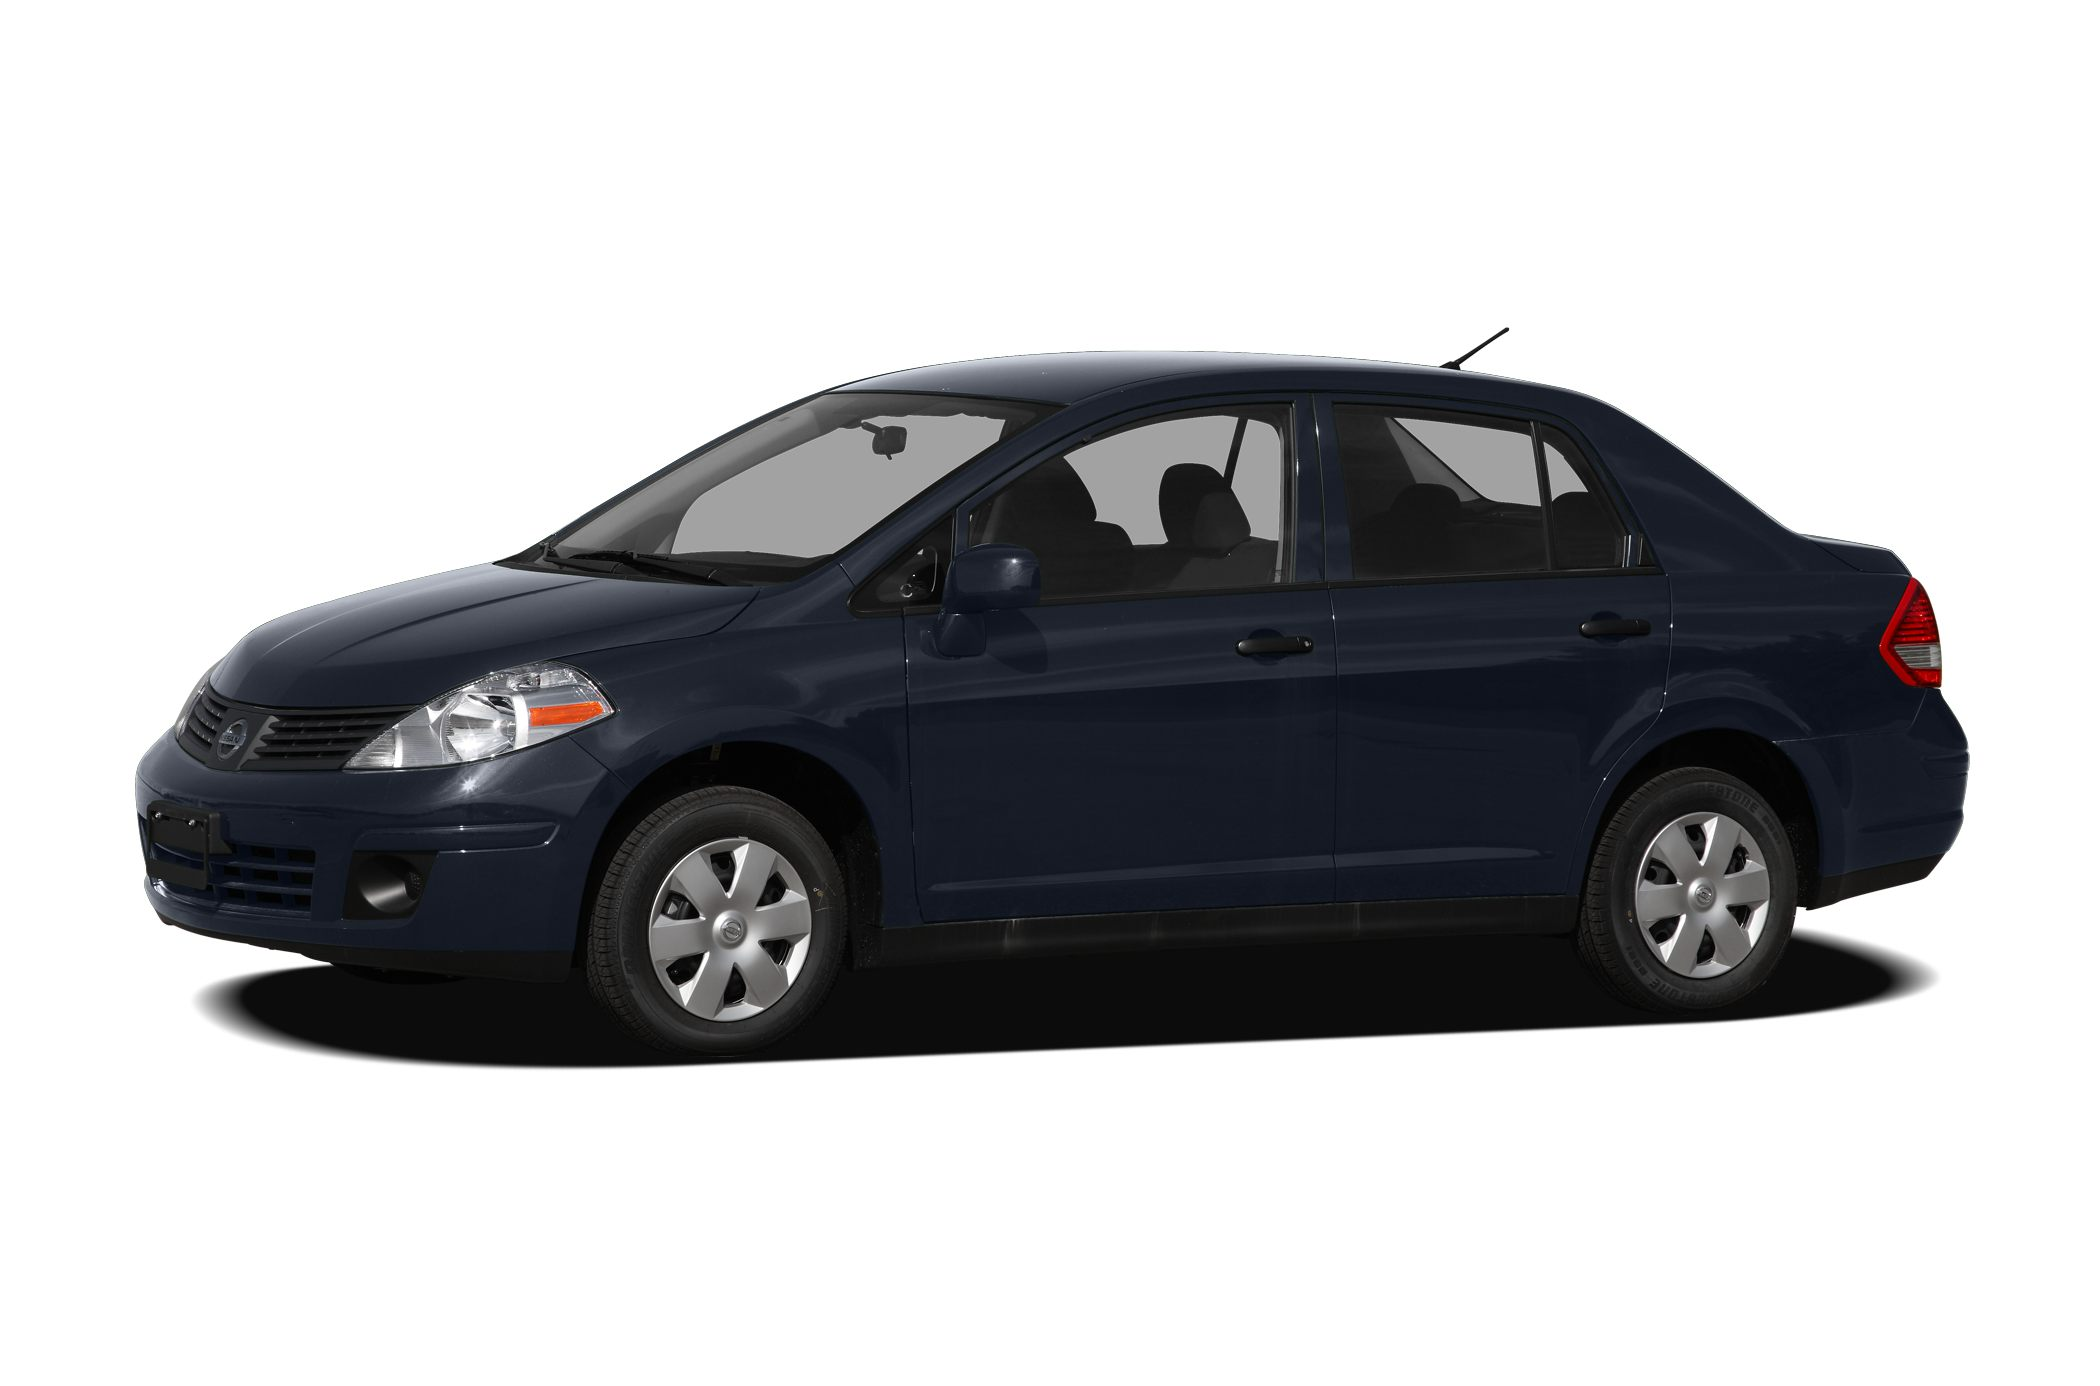 2009 Nissan Versa 1.8 S Hatchback for sale in Pine Bluff for $0 with 66,109 miles